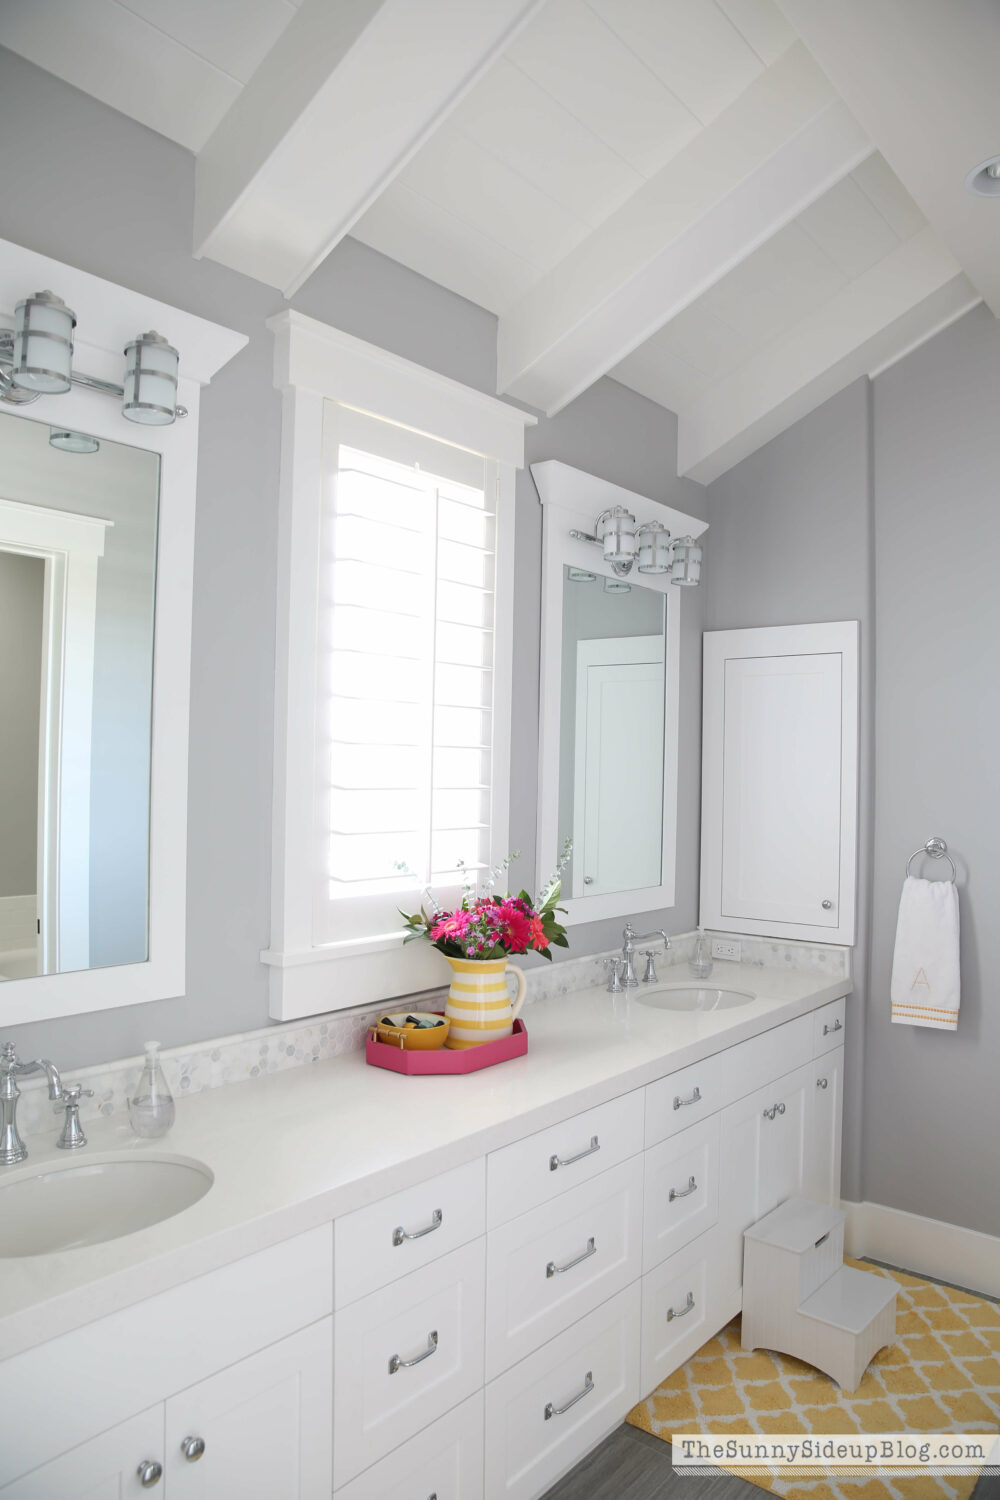 19 Beautiful Girl Bathroom Ideas For Your Growing Up David On Blog